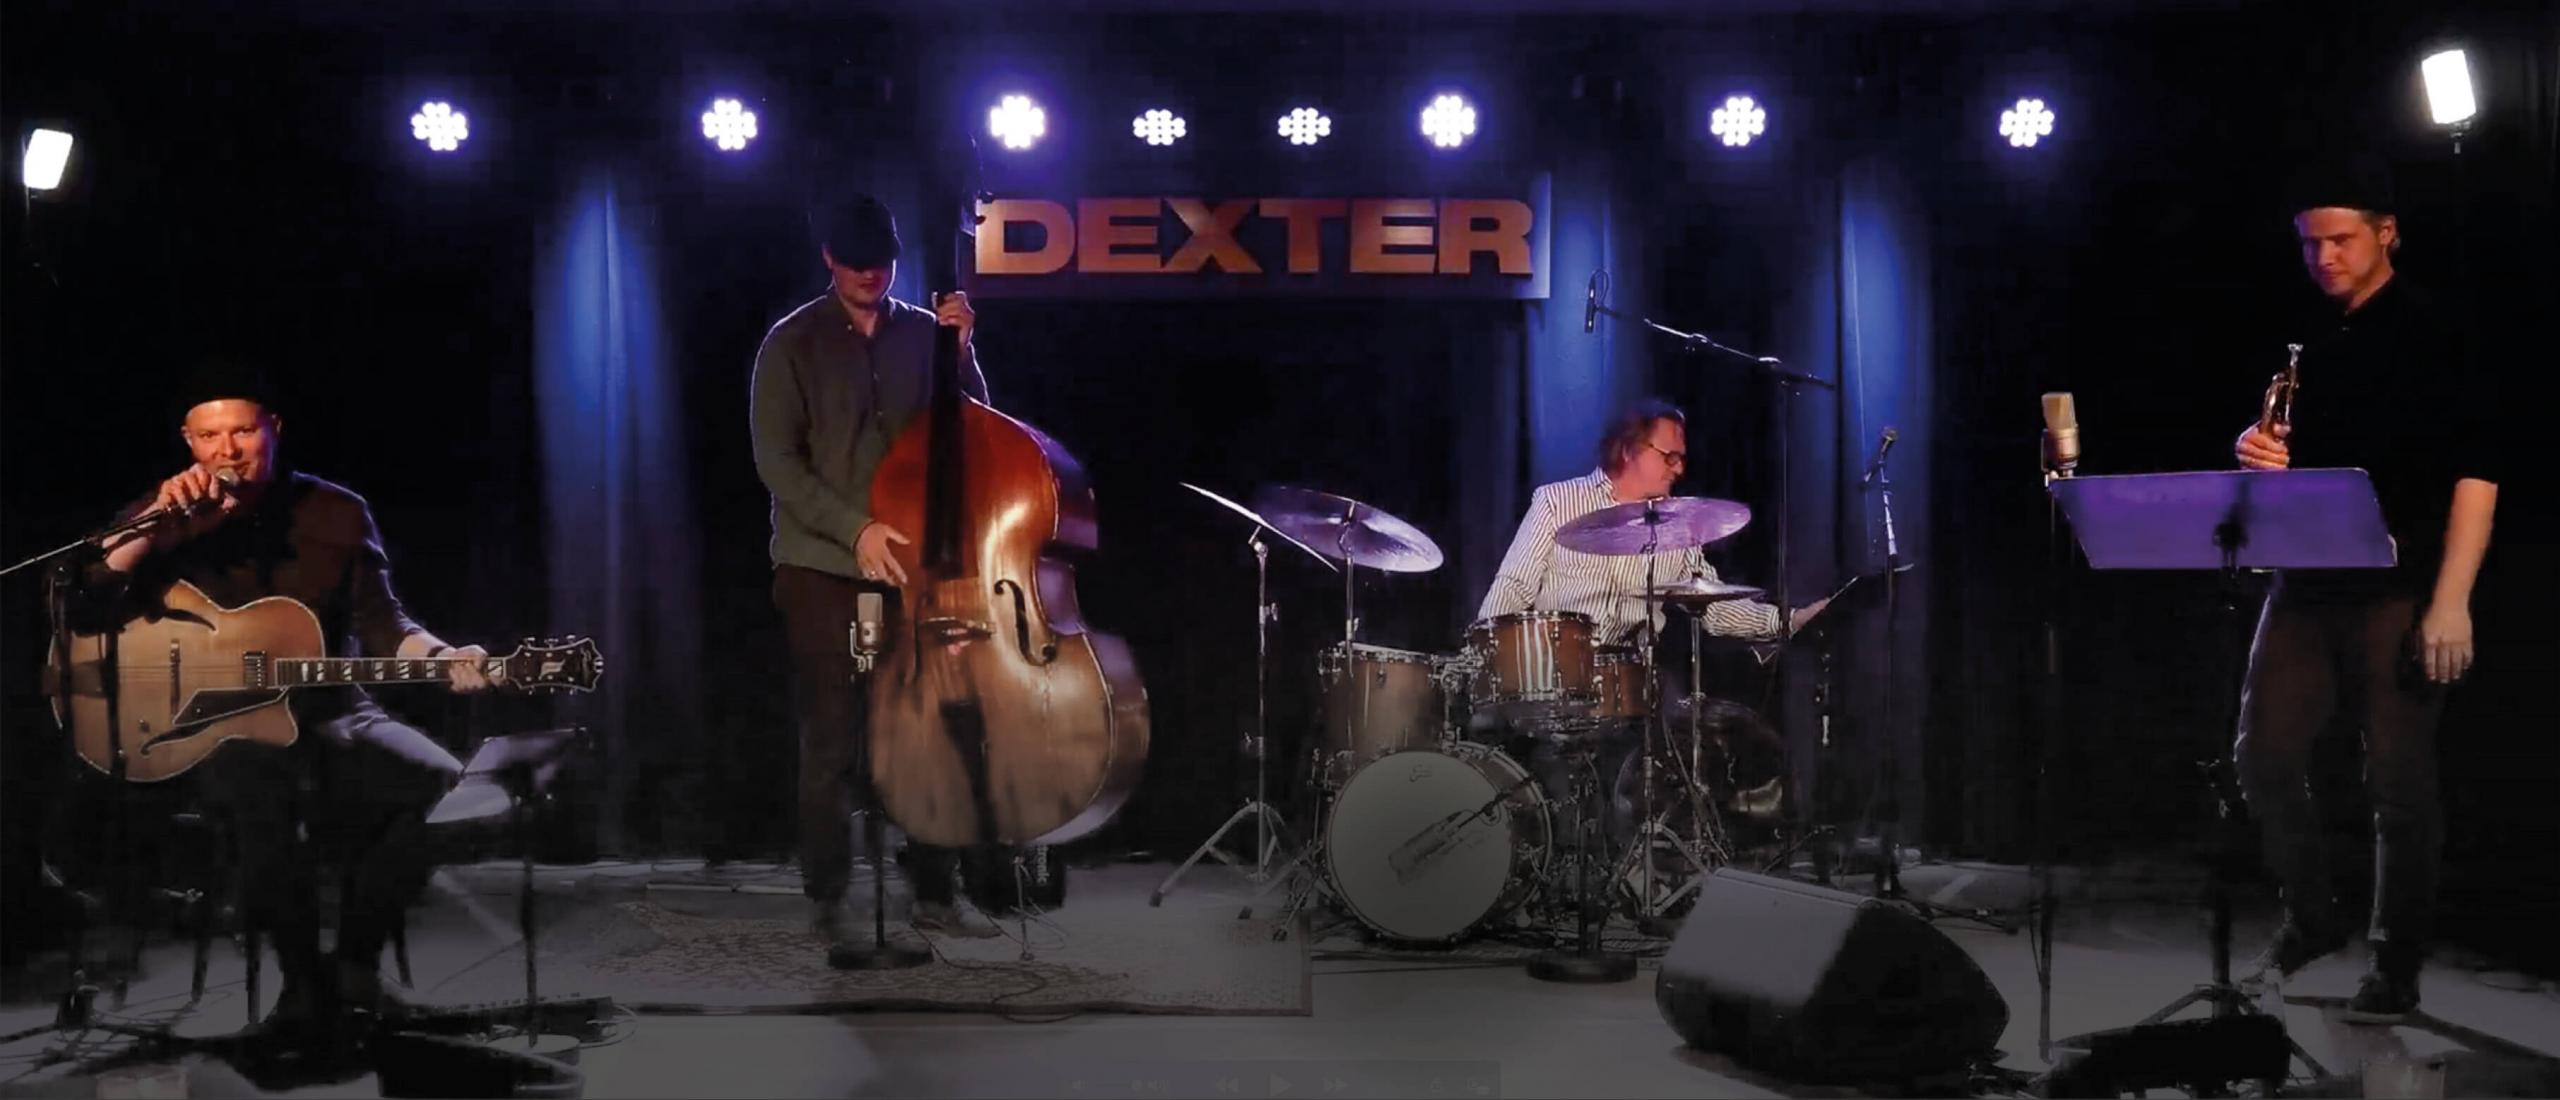 Jazz from Dexter May 29th, 19.00 at nipalive.ax. Nordic institute on Åland